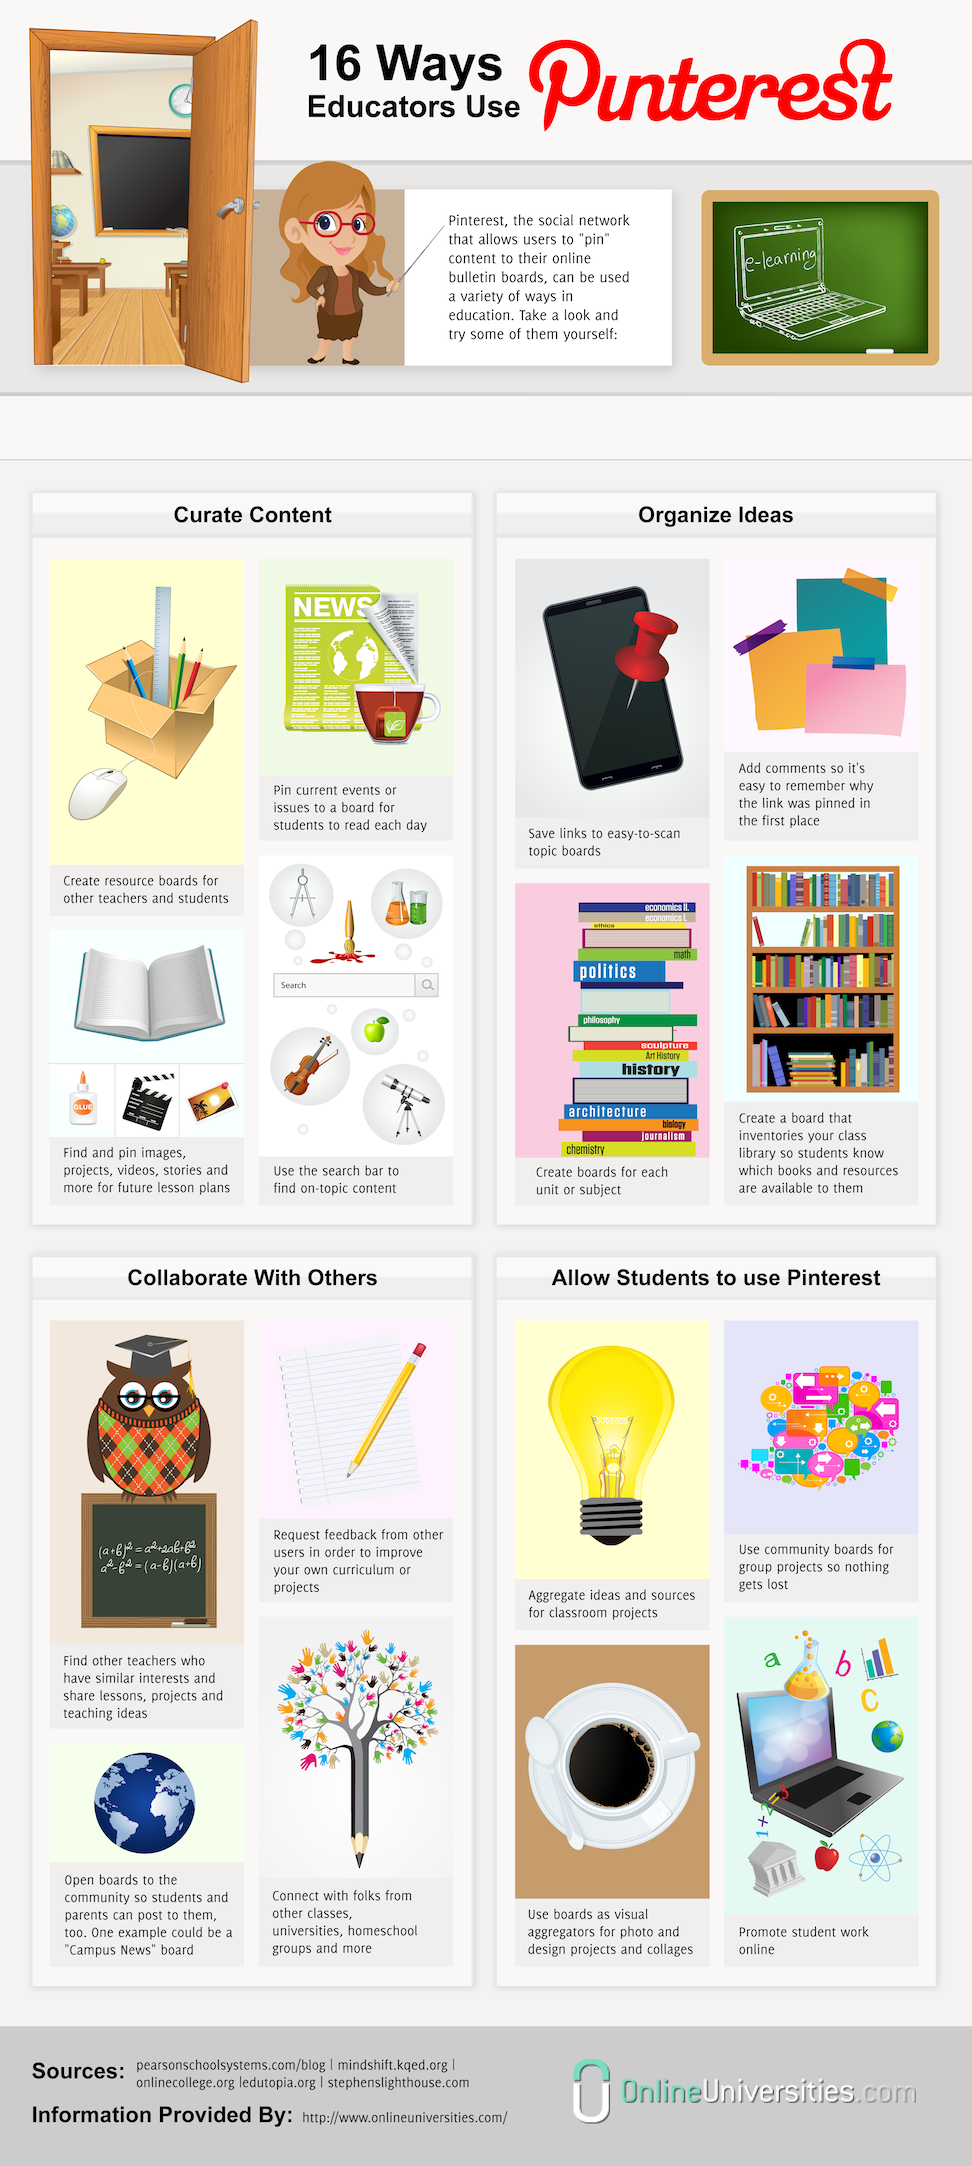 pinterest and education